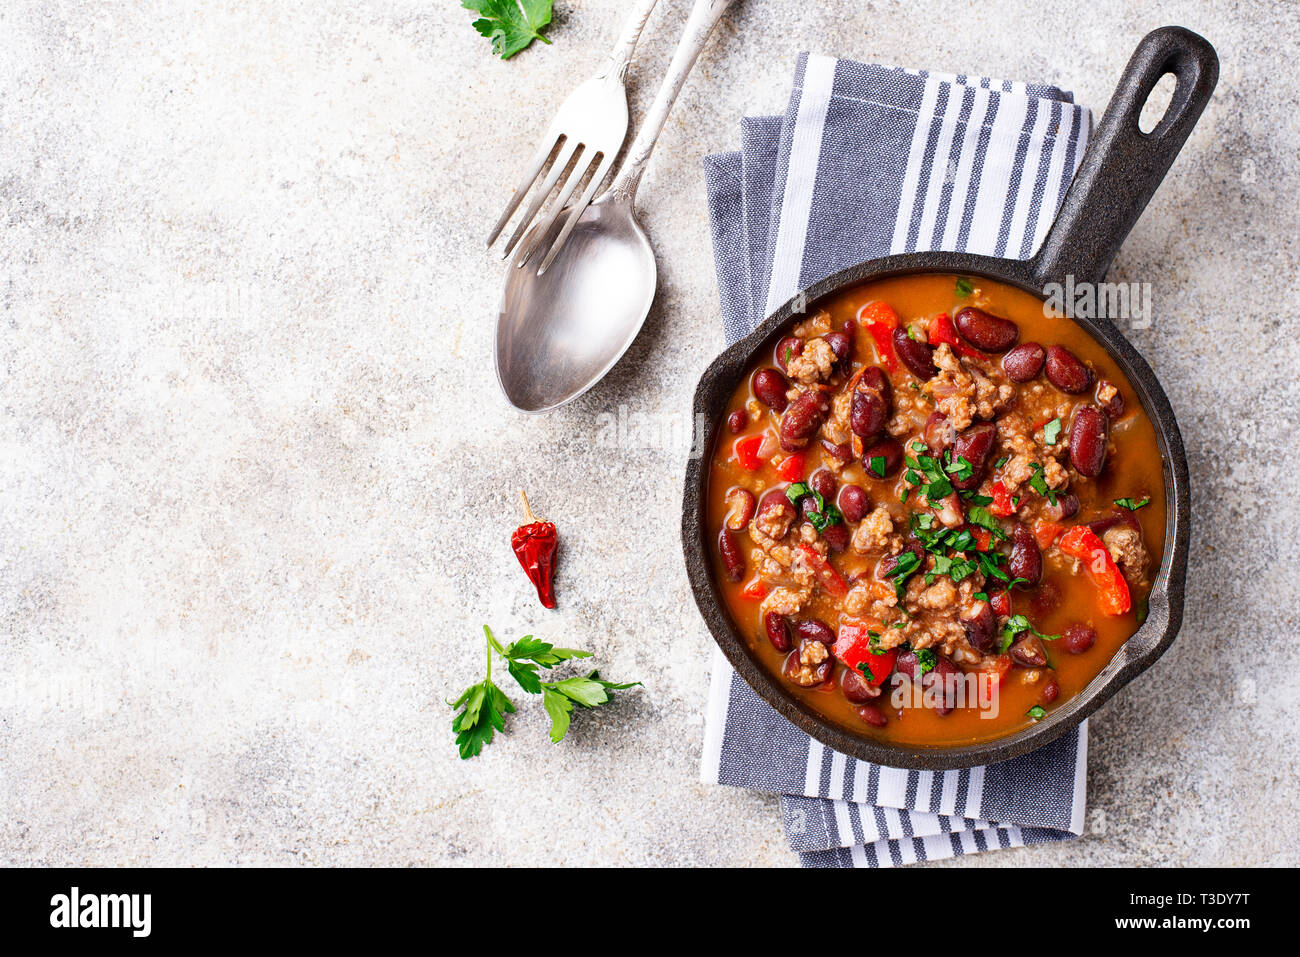 Traditionelle mexikanische Gericht Chili con Carne Stockbild